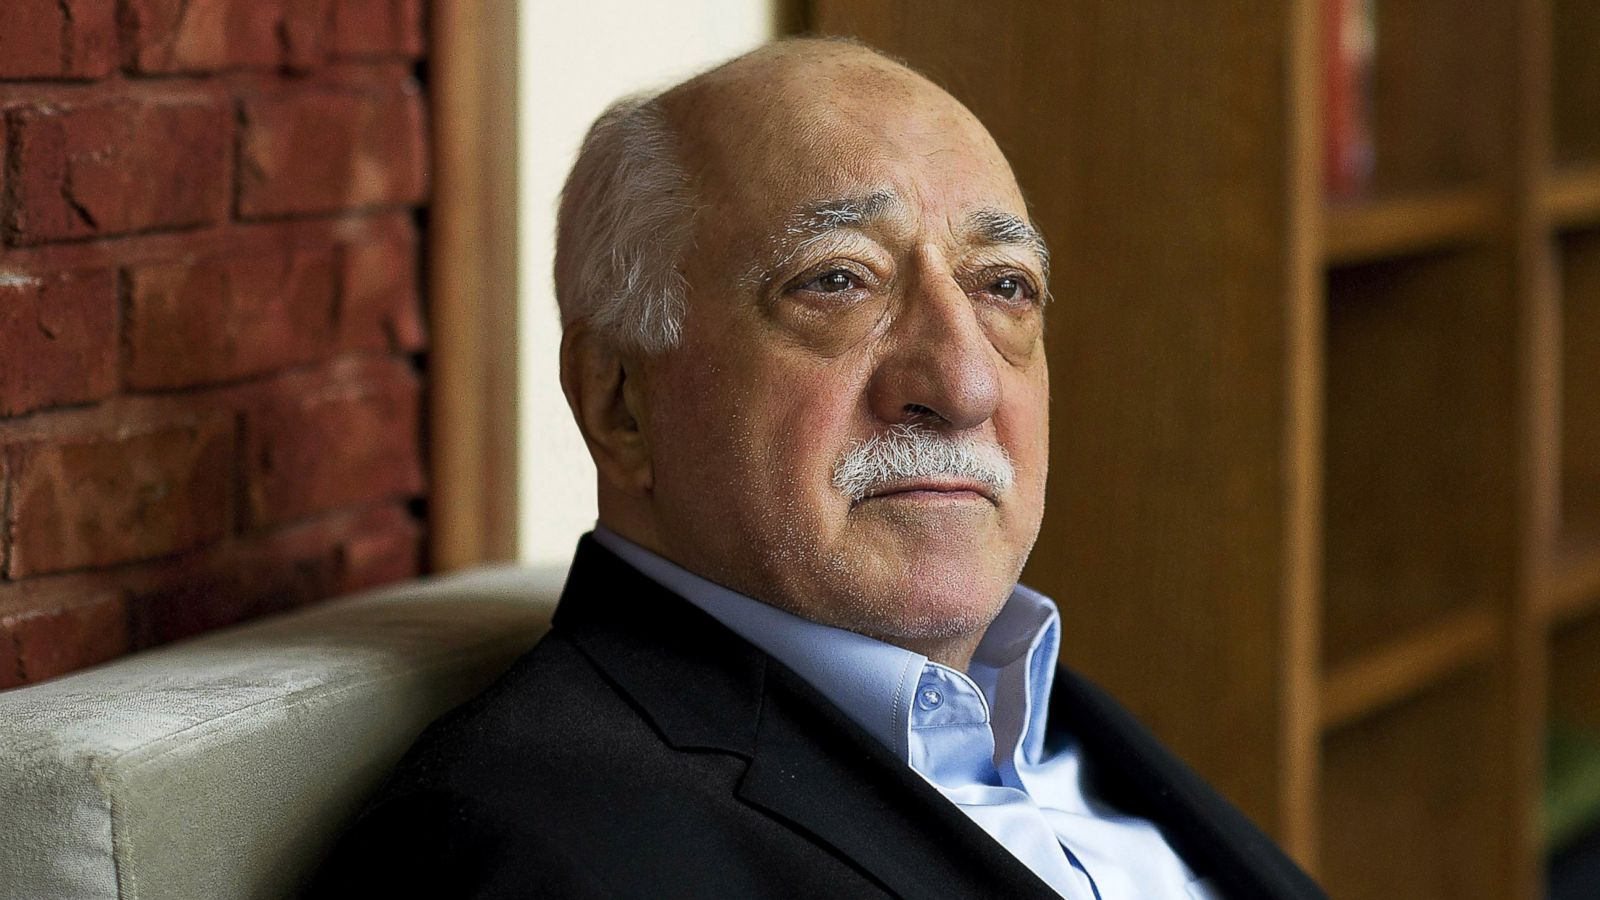 Turkish Islamic preacher Fethullah Gulen is pictured at his residence in Saylorsburg, Pa. Gulen is charged in Turkey with plotting to overthrow the government in a case his supporters call politically motivated. (AP Photo/Selahattin Sevi)